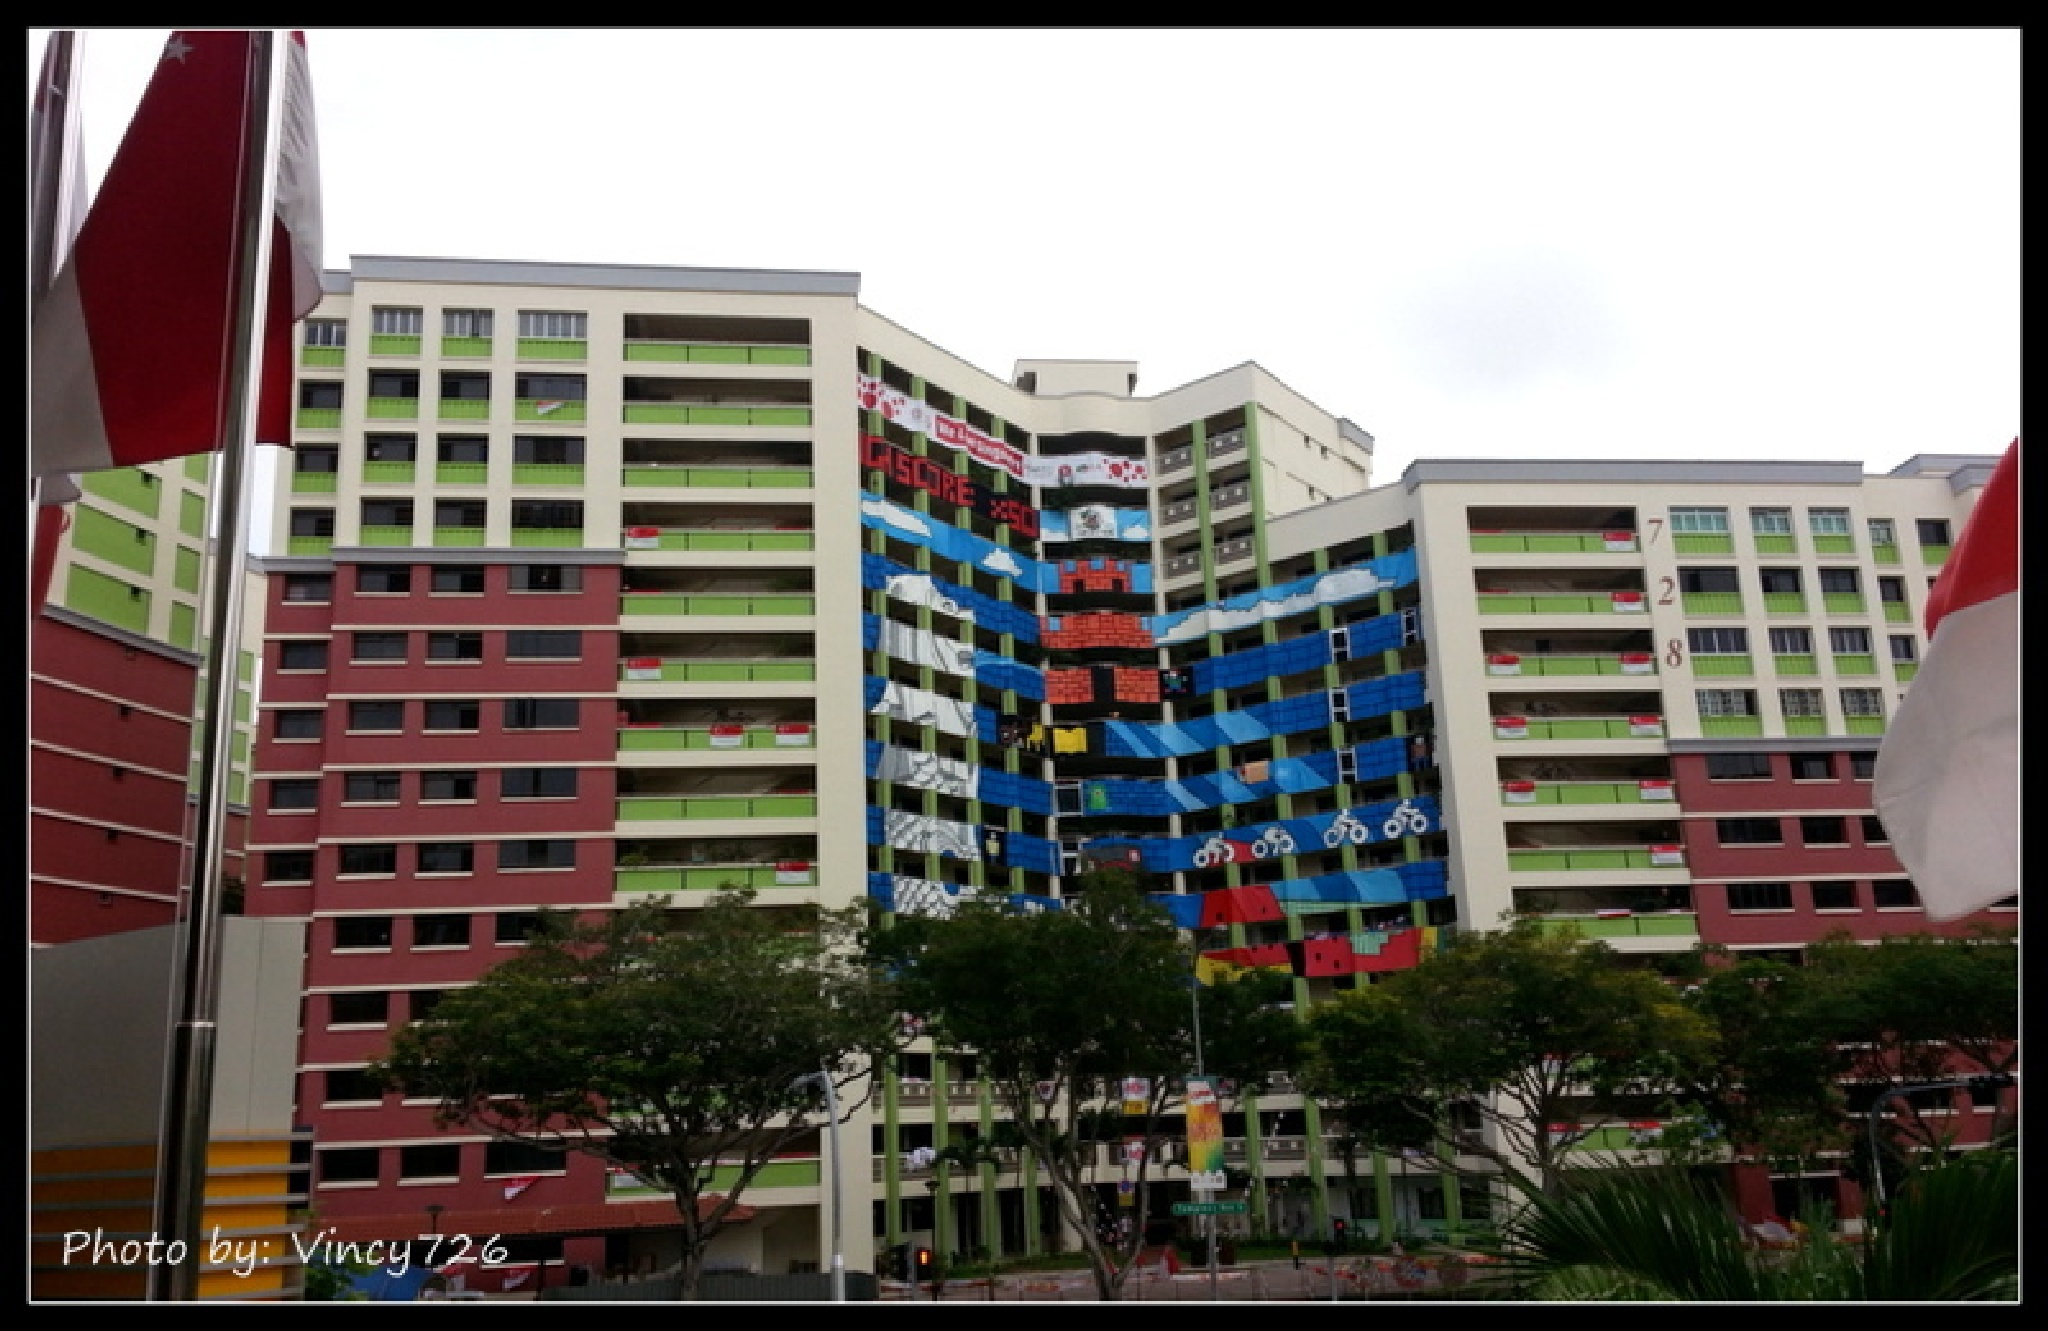 A typical public apartment block in Singapore. by vincy726